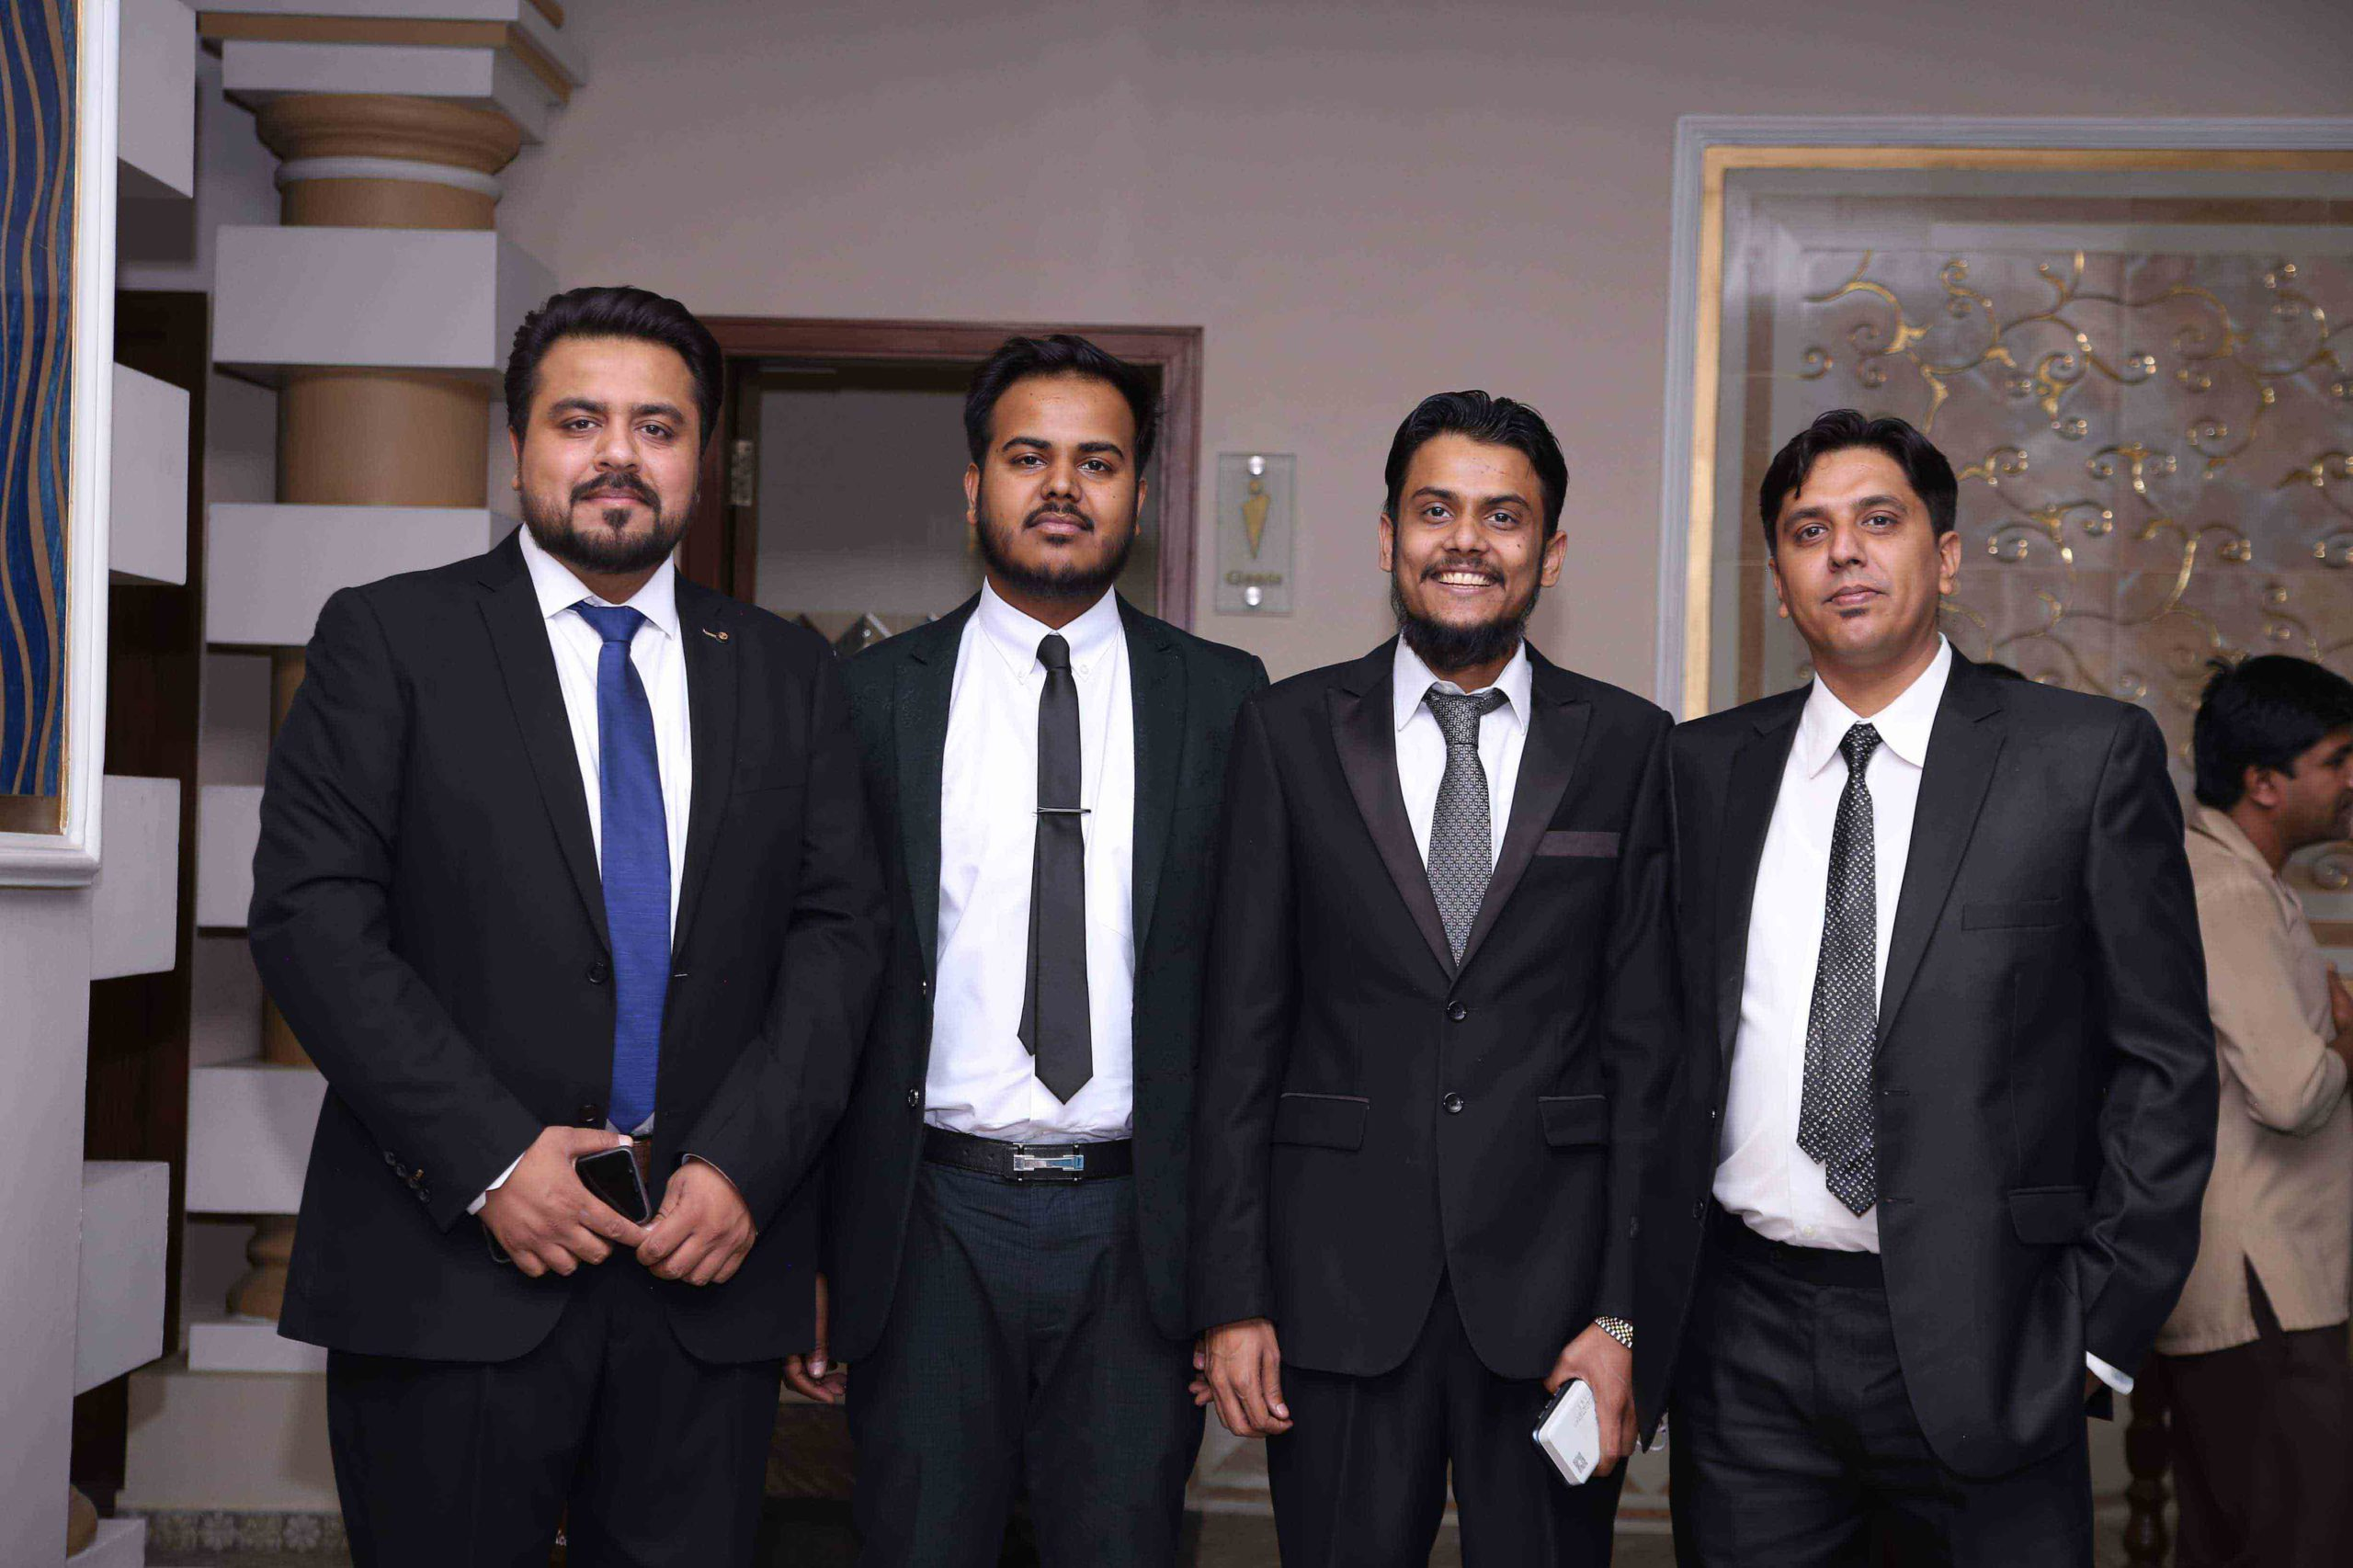 STAFF_ANNUAL_DINNER_&_IFTAR_PARTTY_14